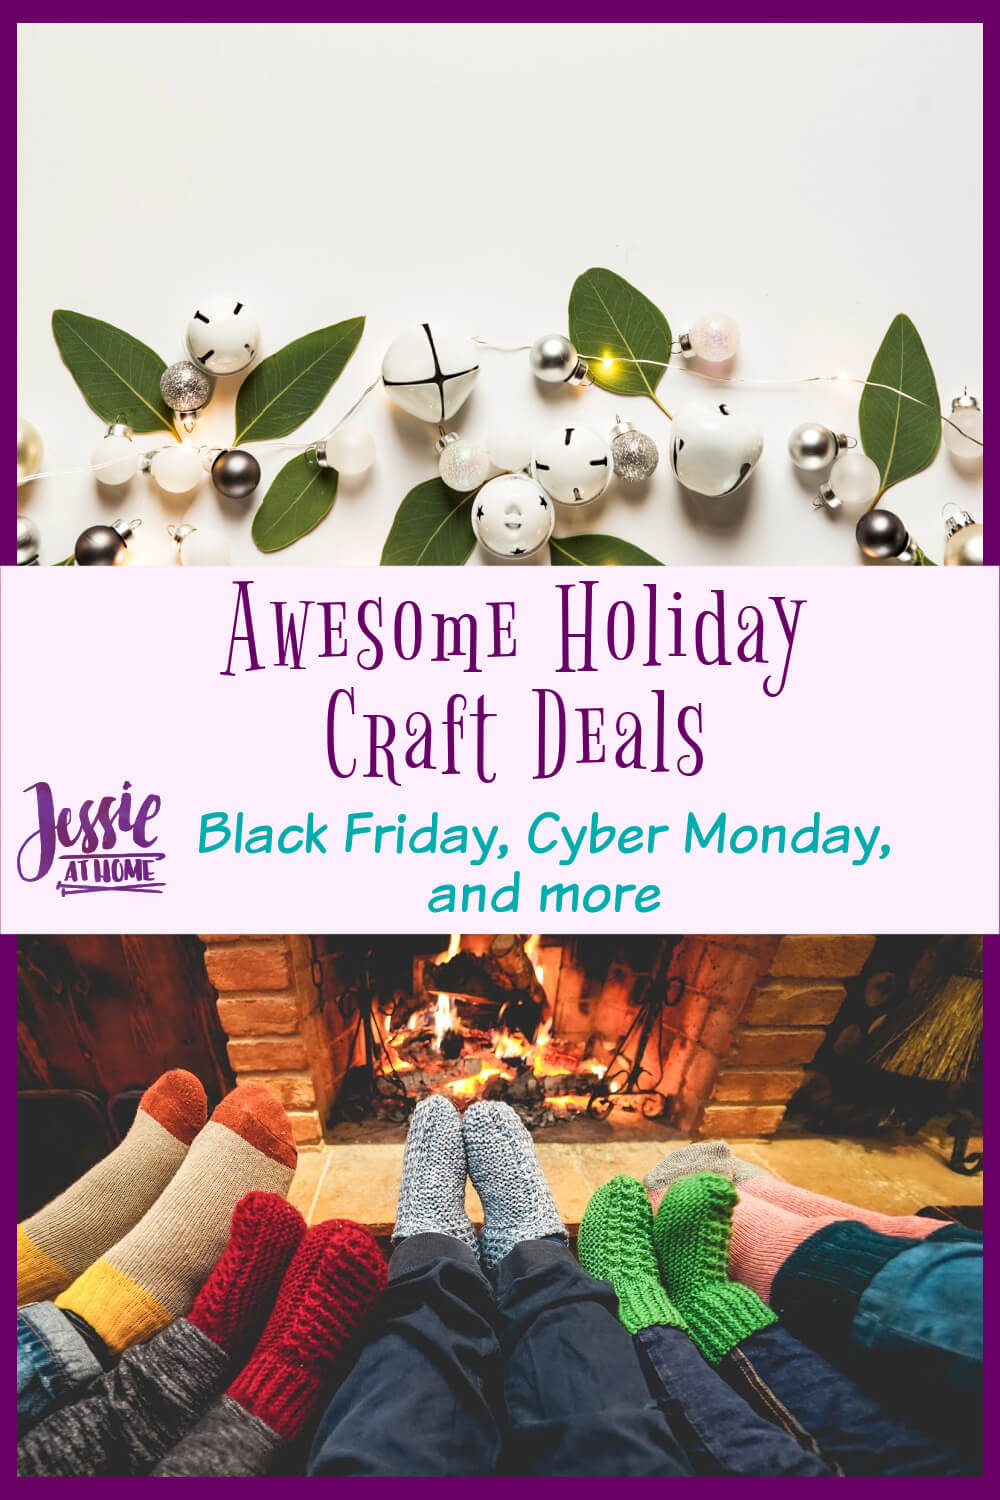 Awesome Holiday Craft Deals! Black Friday, Cyber Monday, and more!